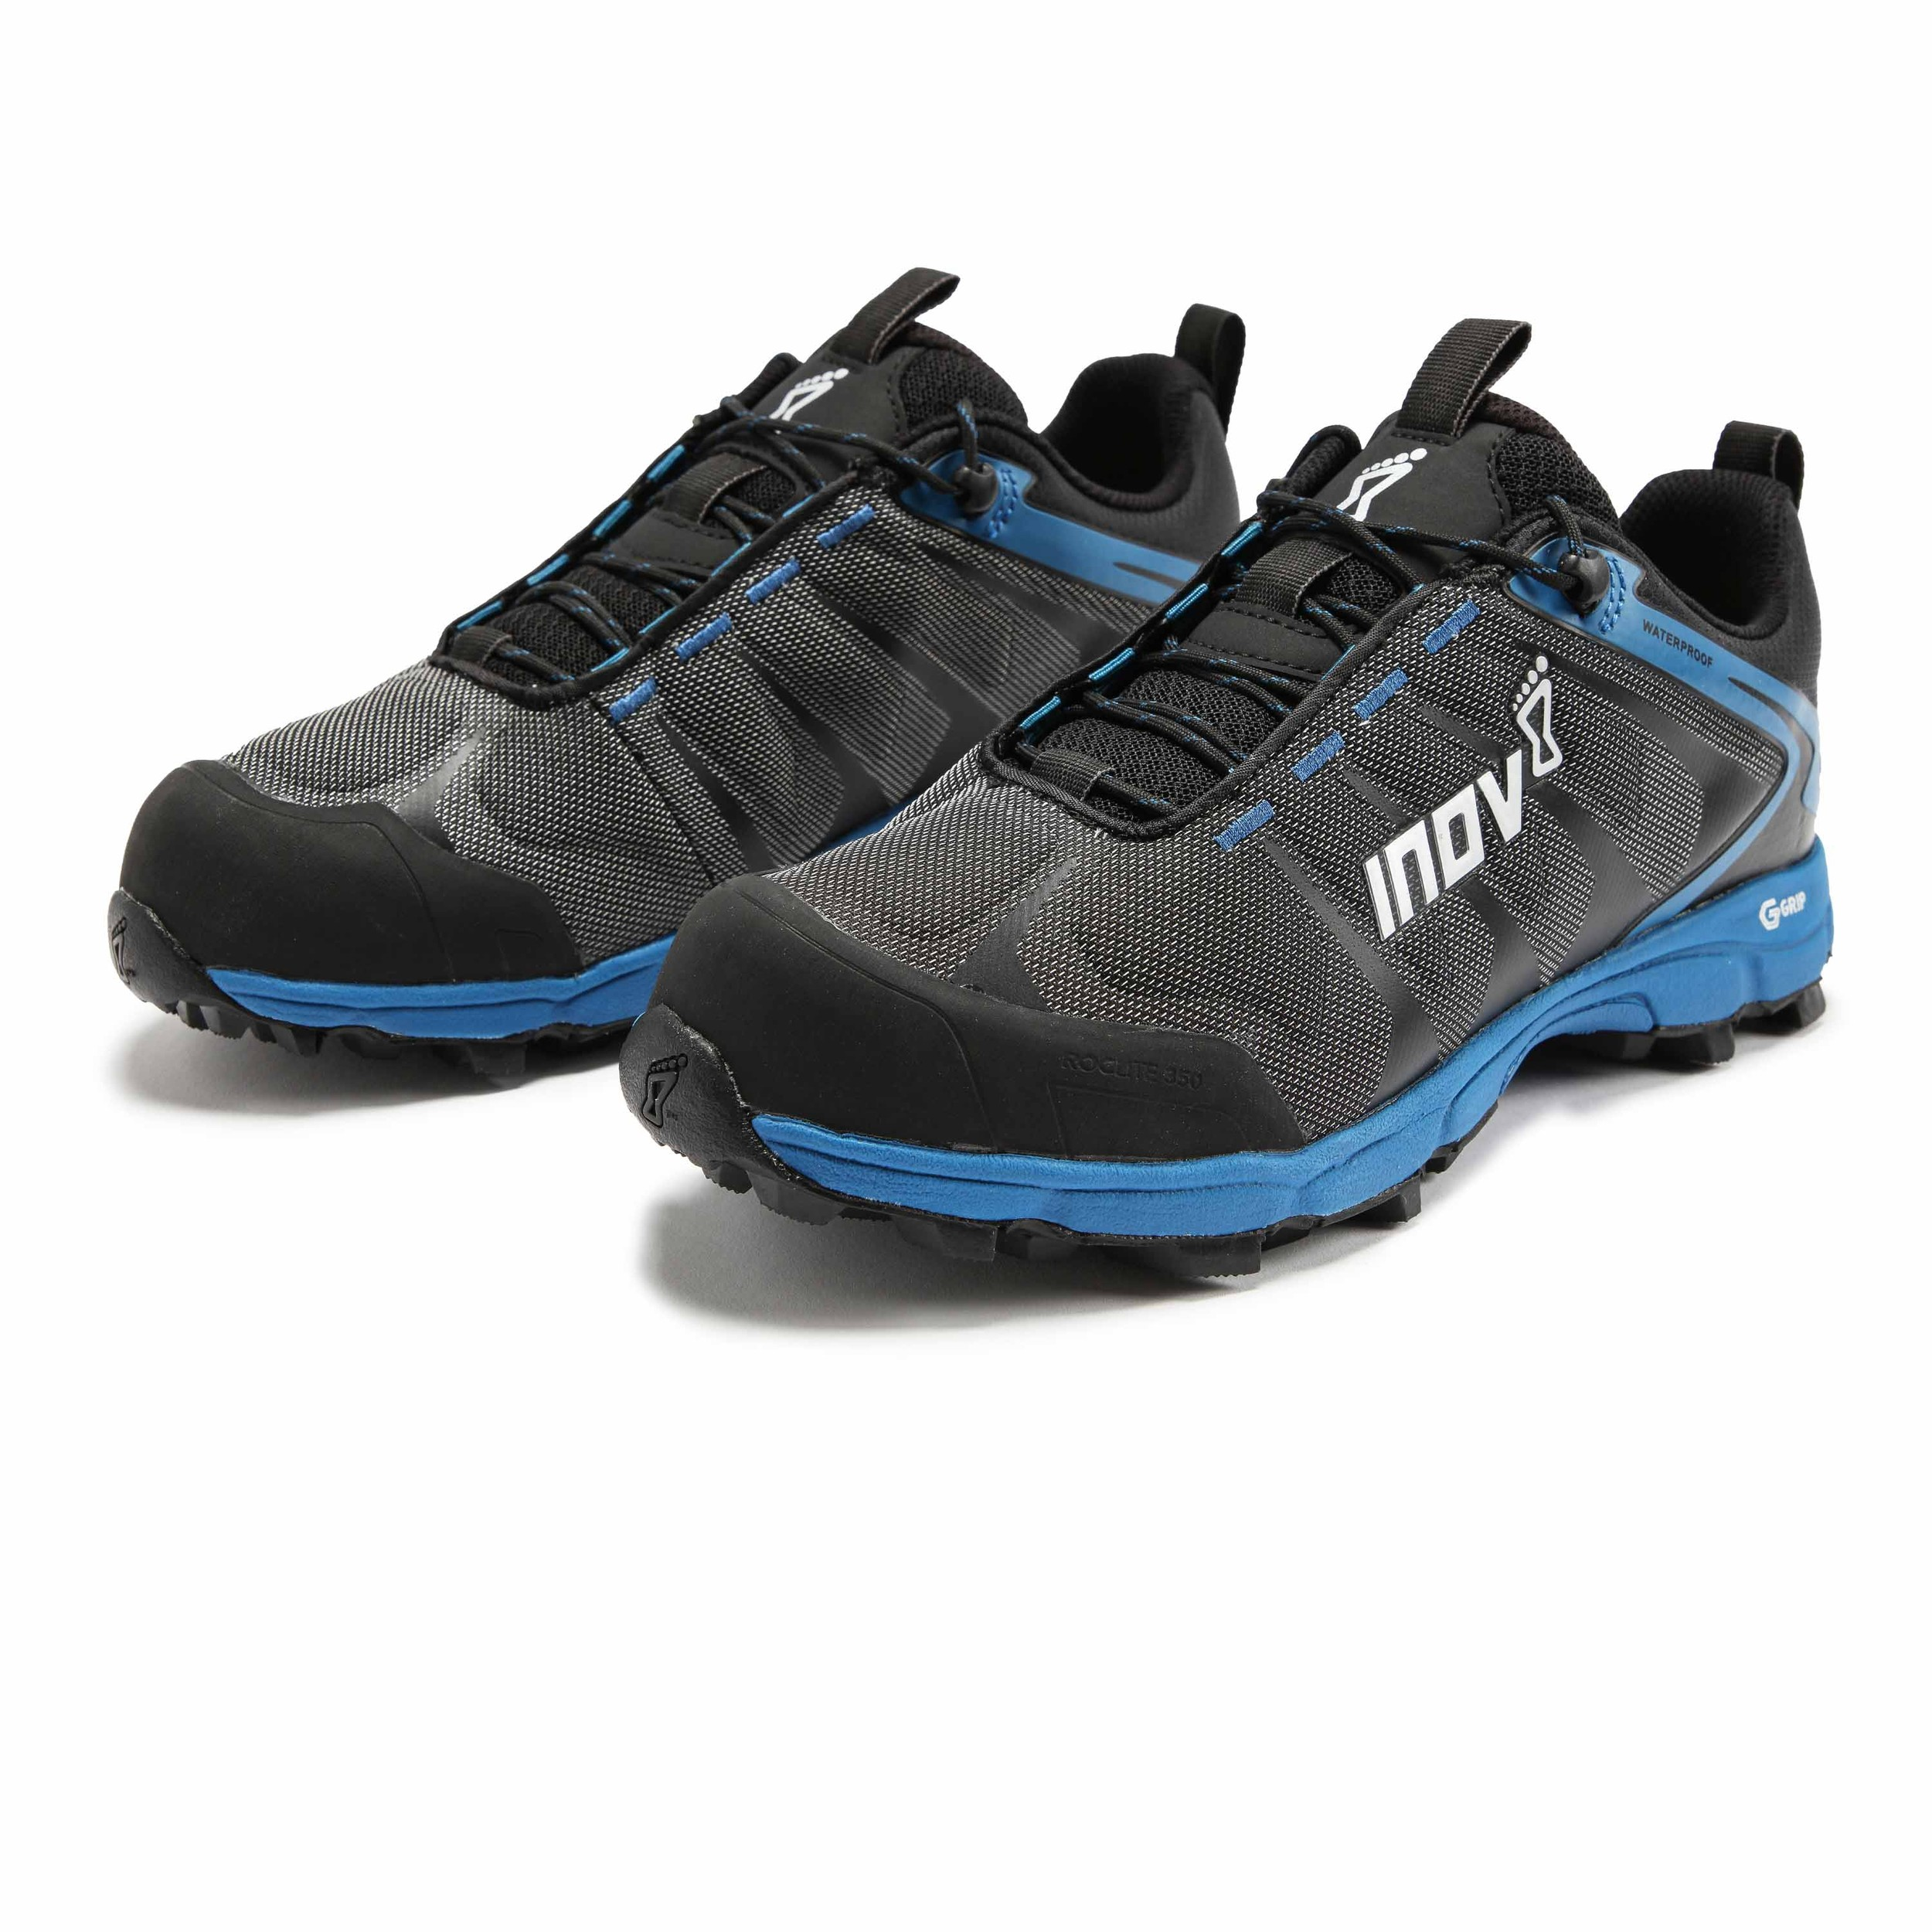 Inov8 Womens Roclite 300 Trail Running Shoes Trainers Sneakers Blue Grey Sports